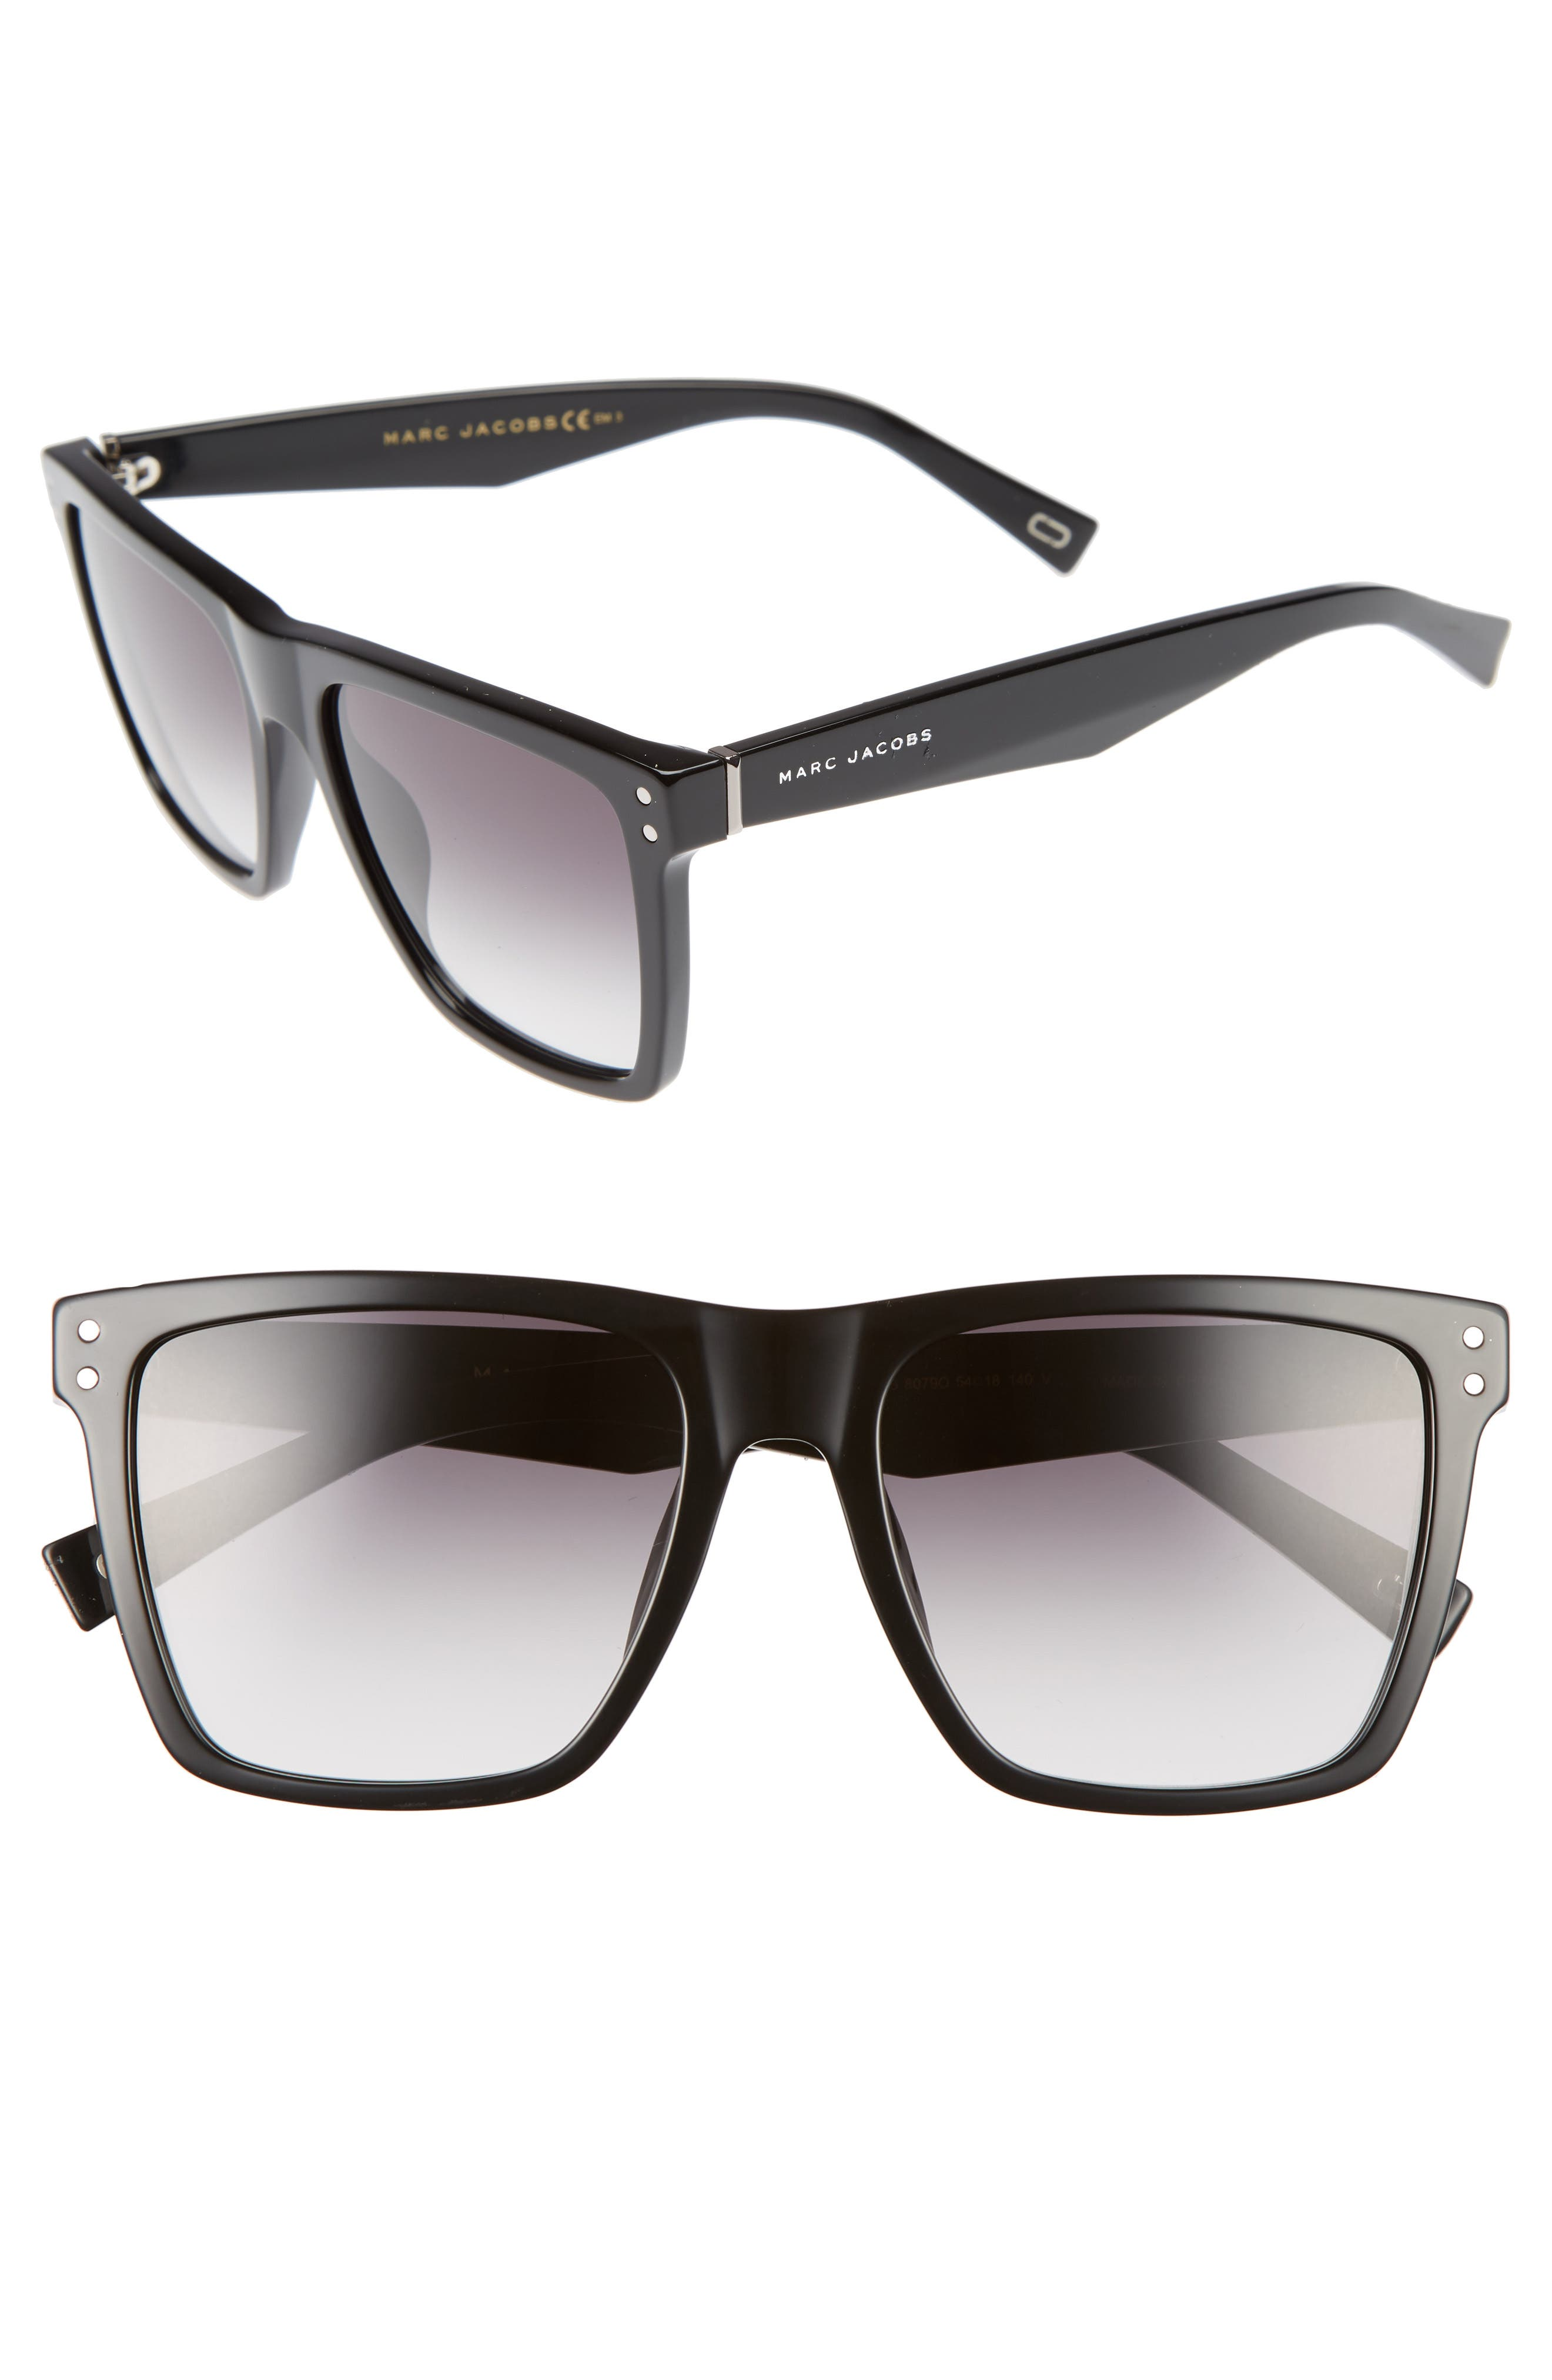 54mm Flat Top Gradient Square Frame Sunglasses,                         Main,                         color, BLACK